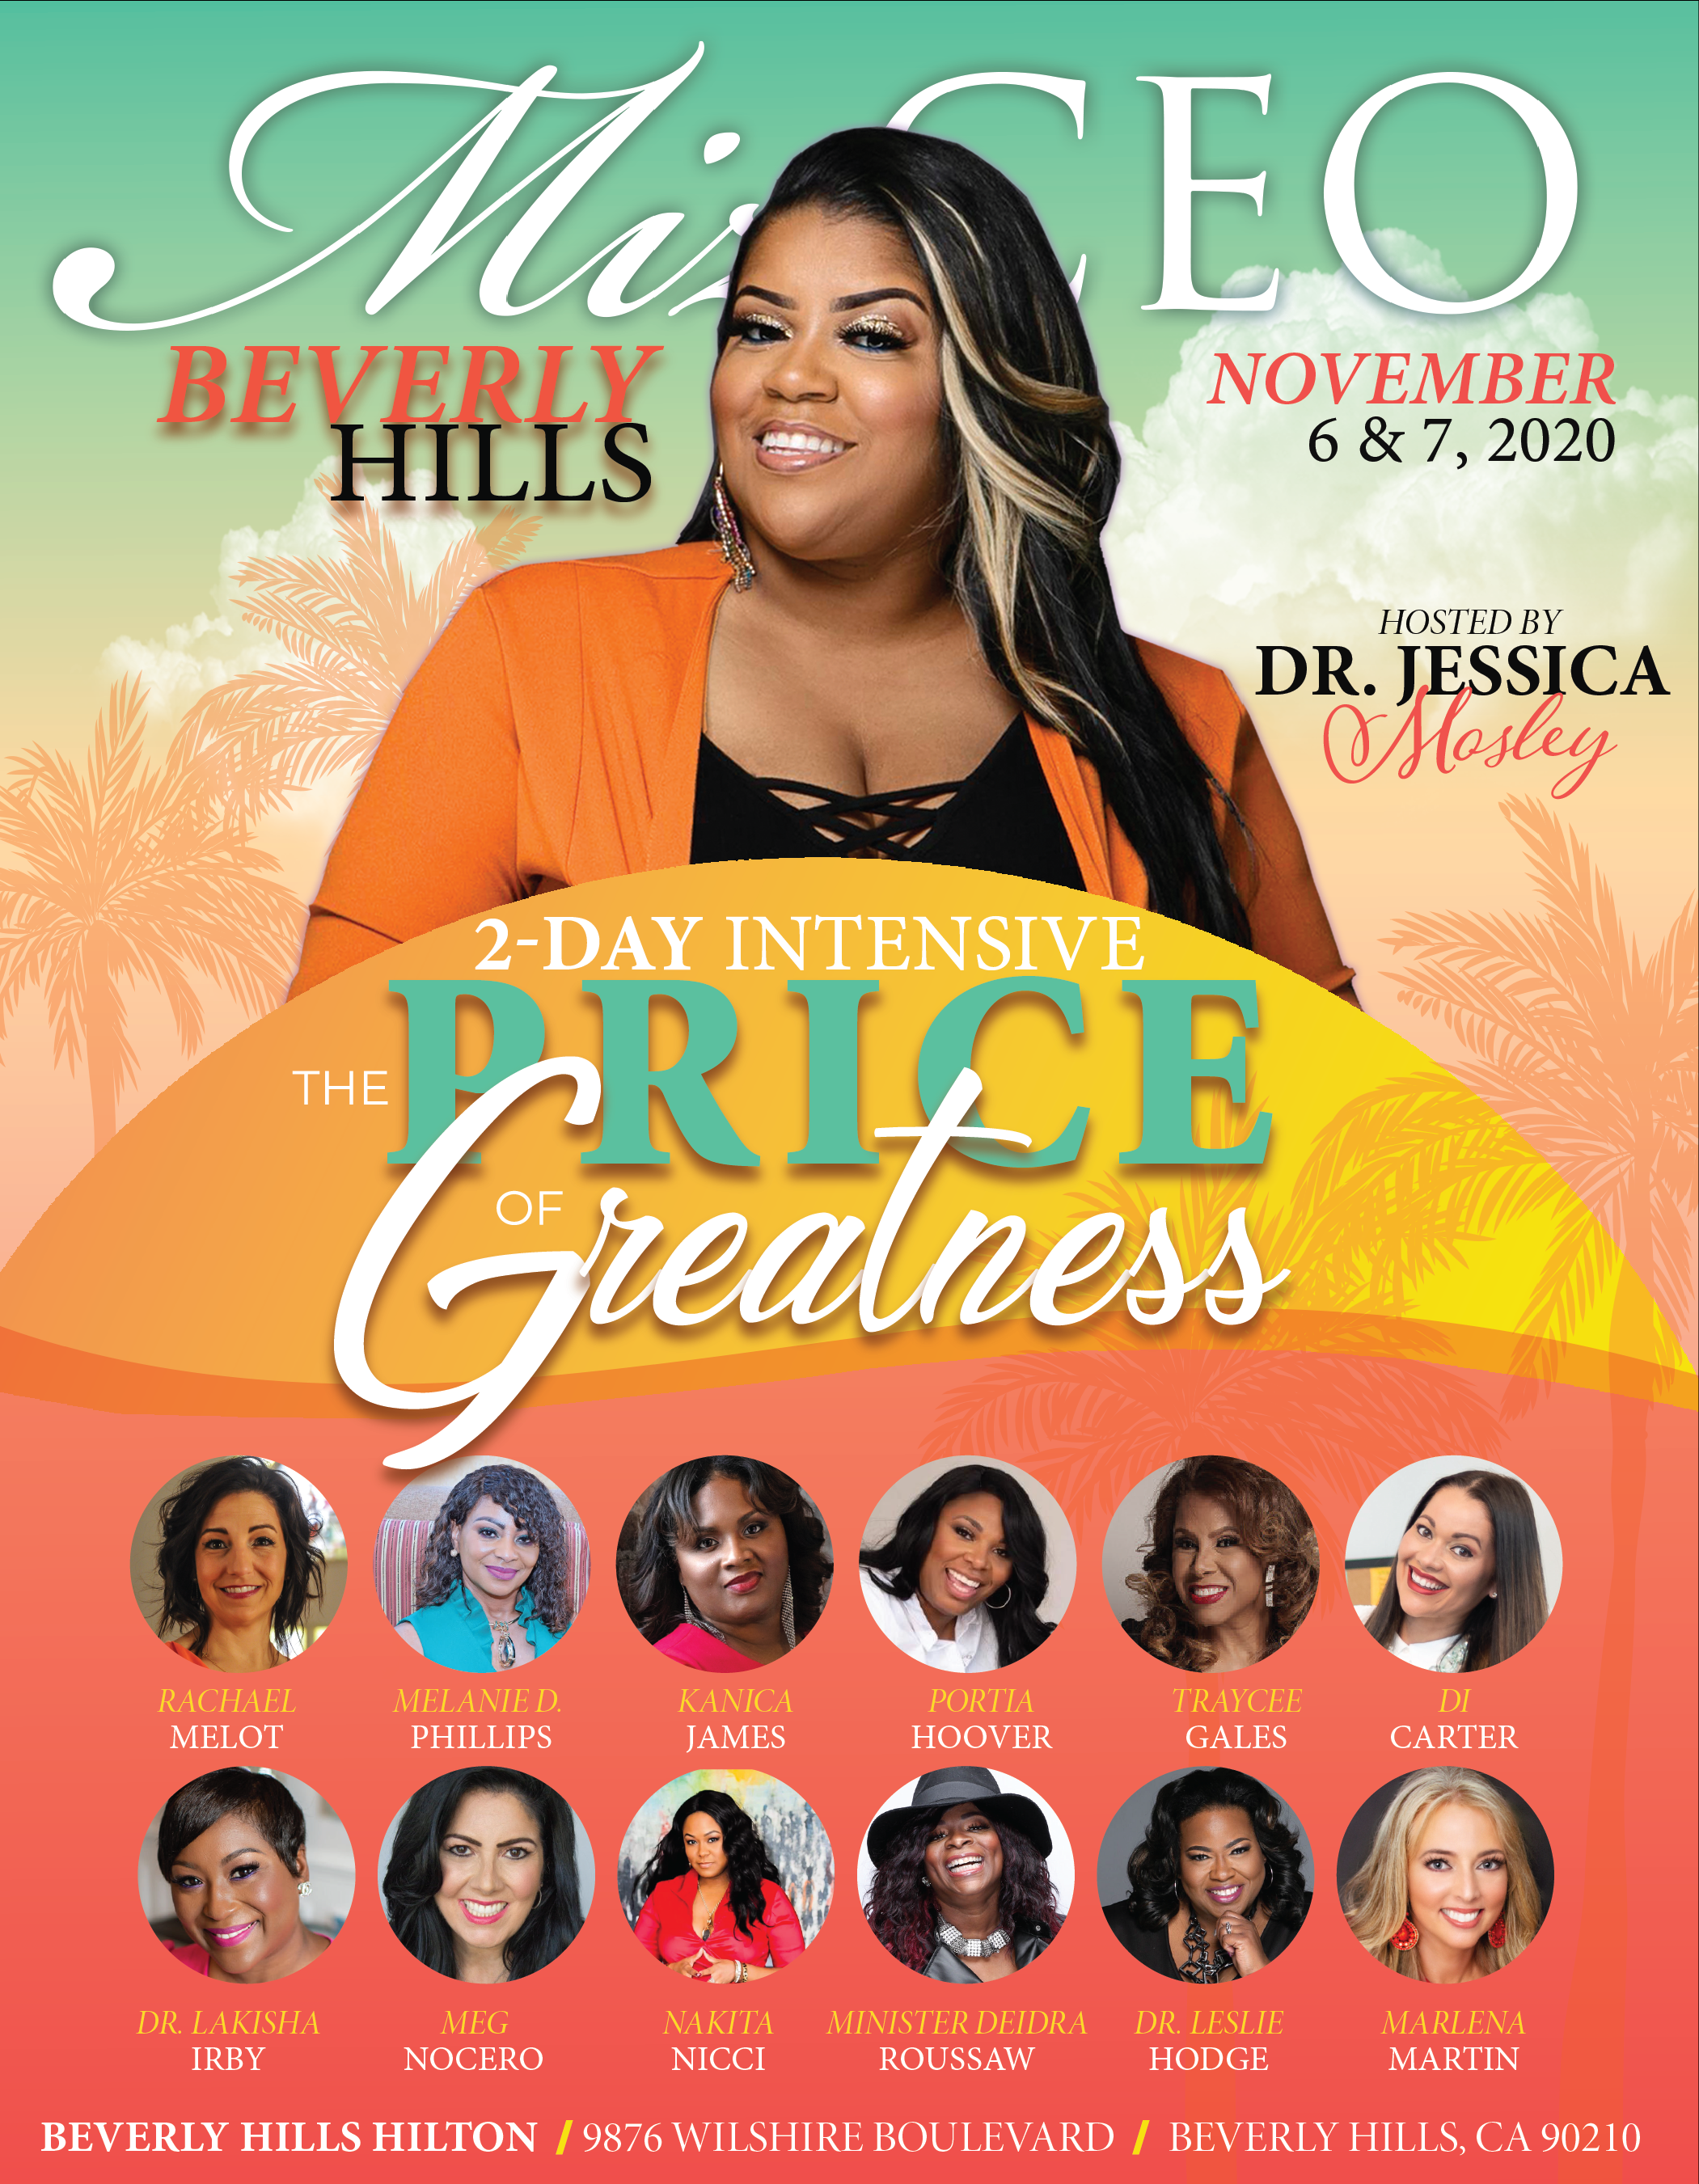 MIZ CEO THE PRICE OF GREATNESS 2-DAY INTENSIVE: November 6  & 7, 2020